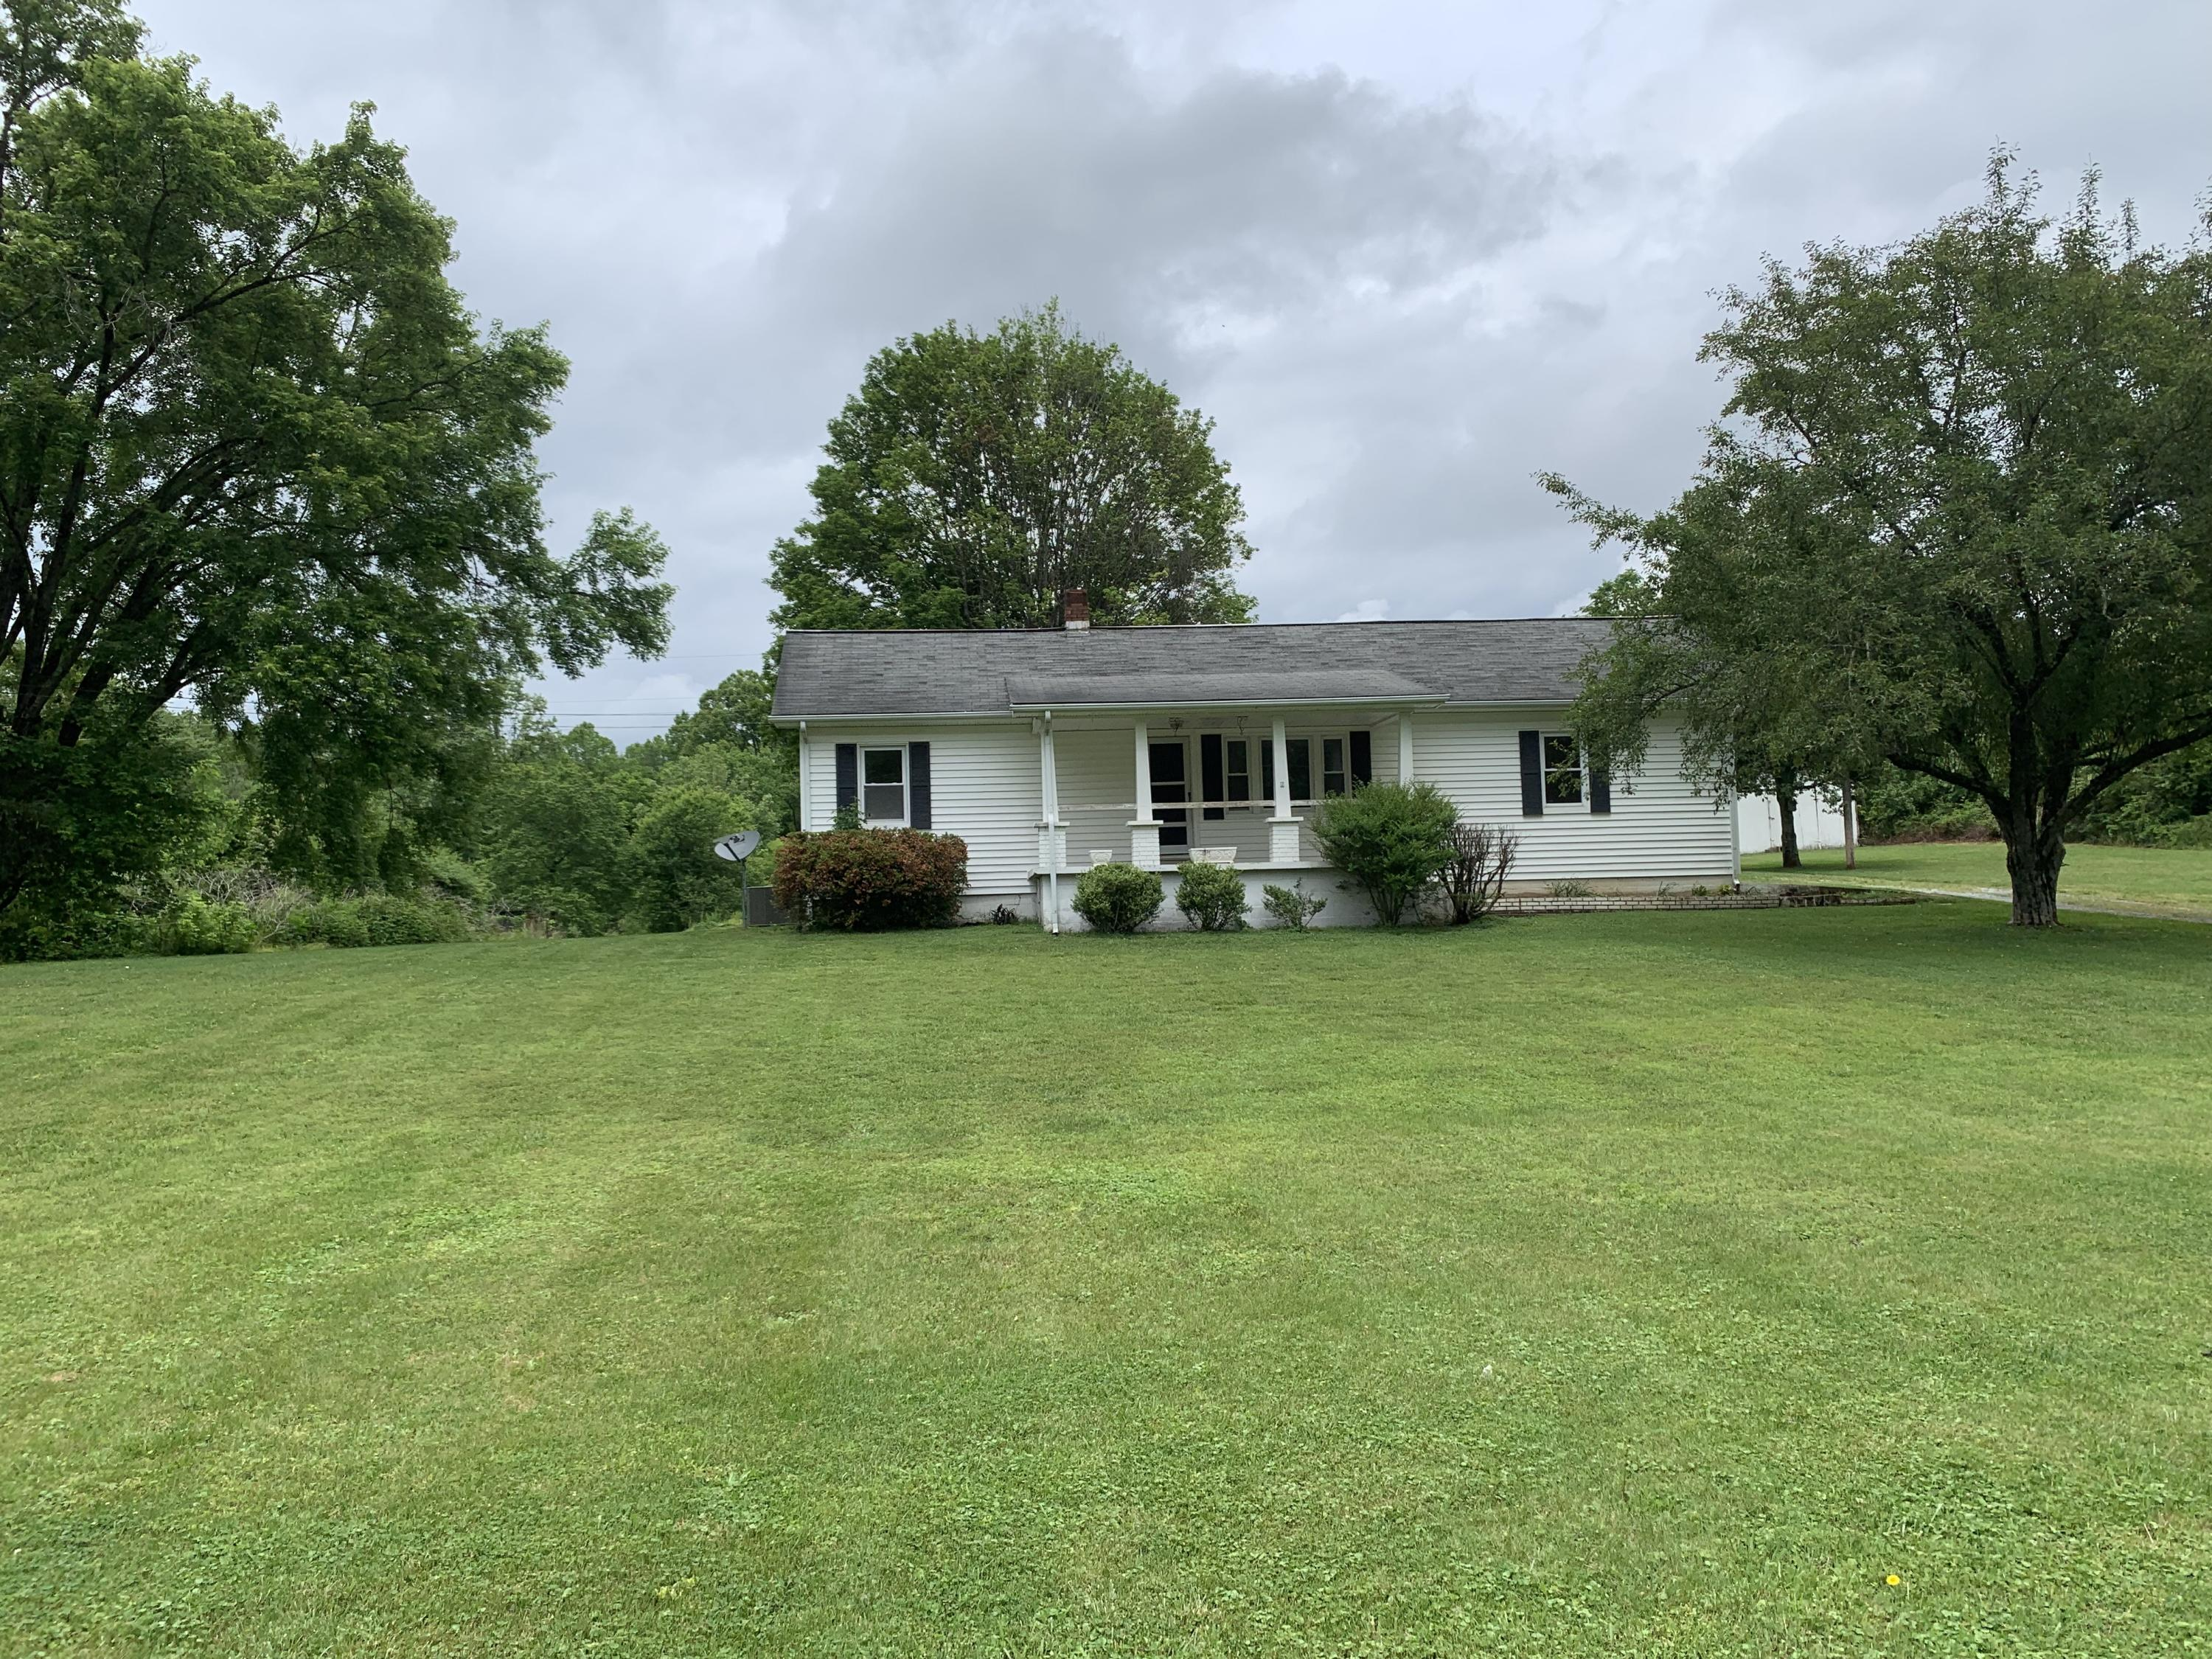 20190511225046793236000000-o Clinton anderson county homes for sale